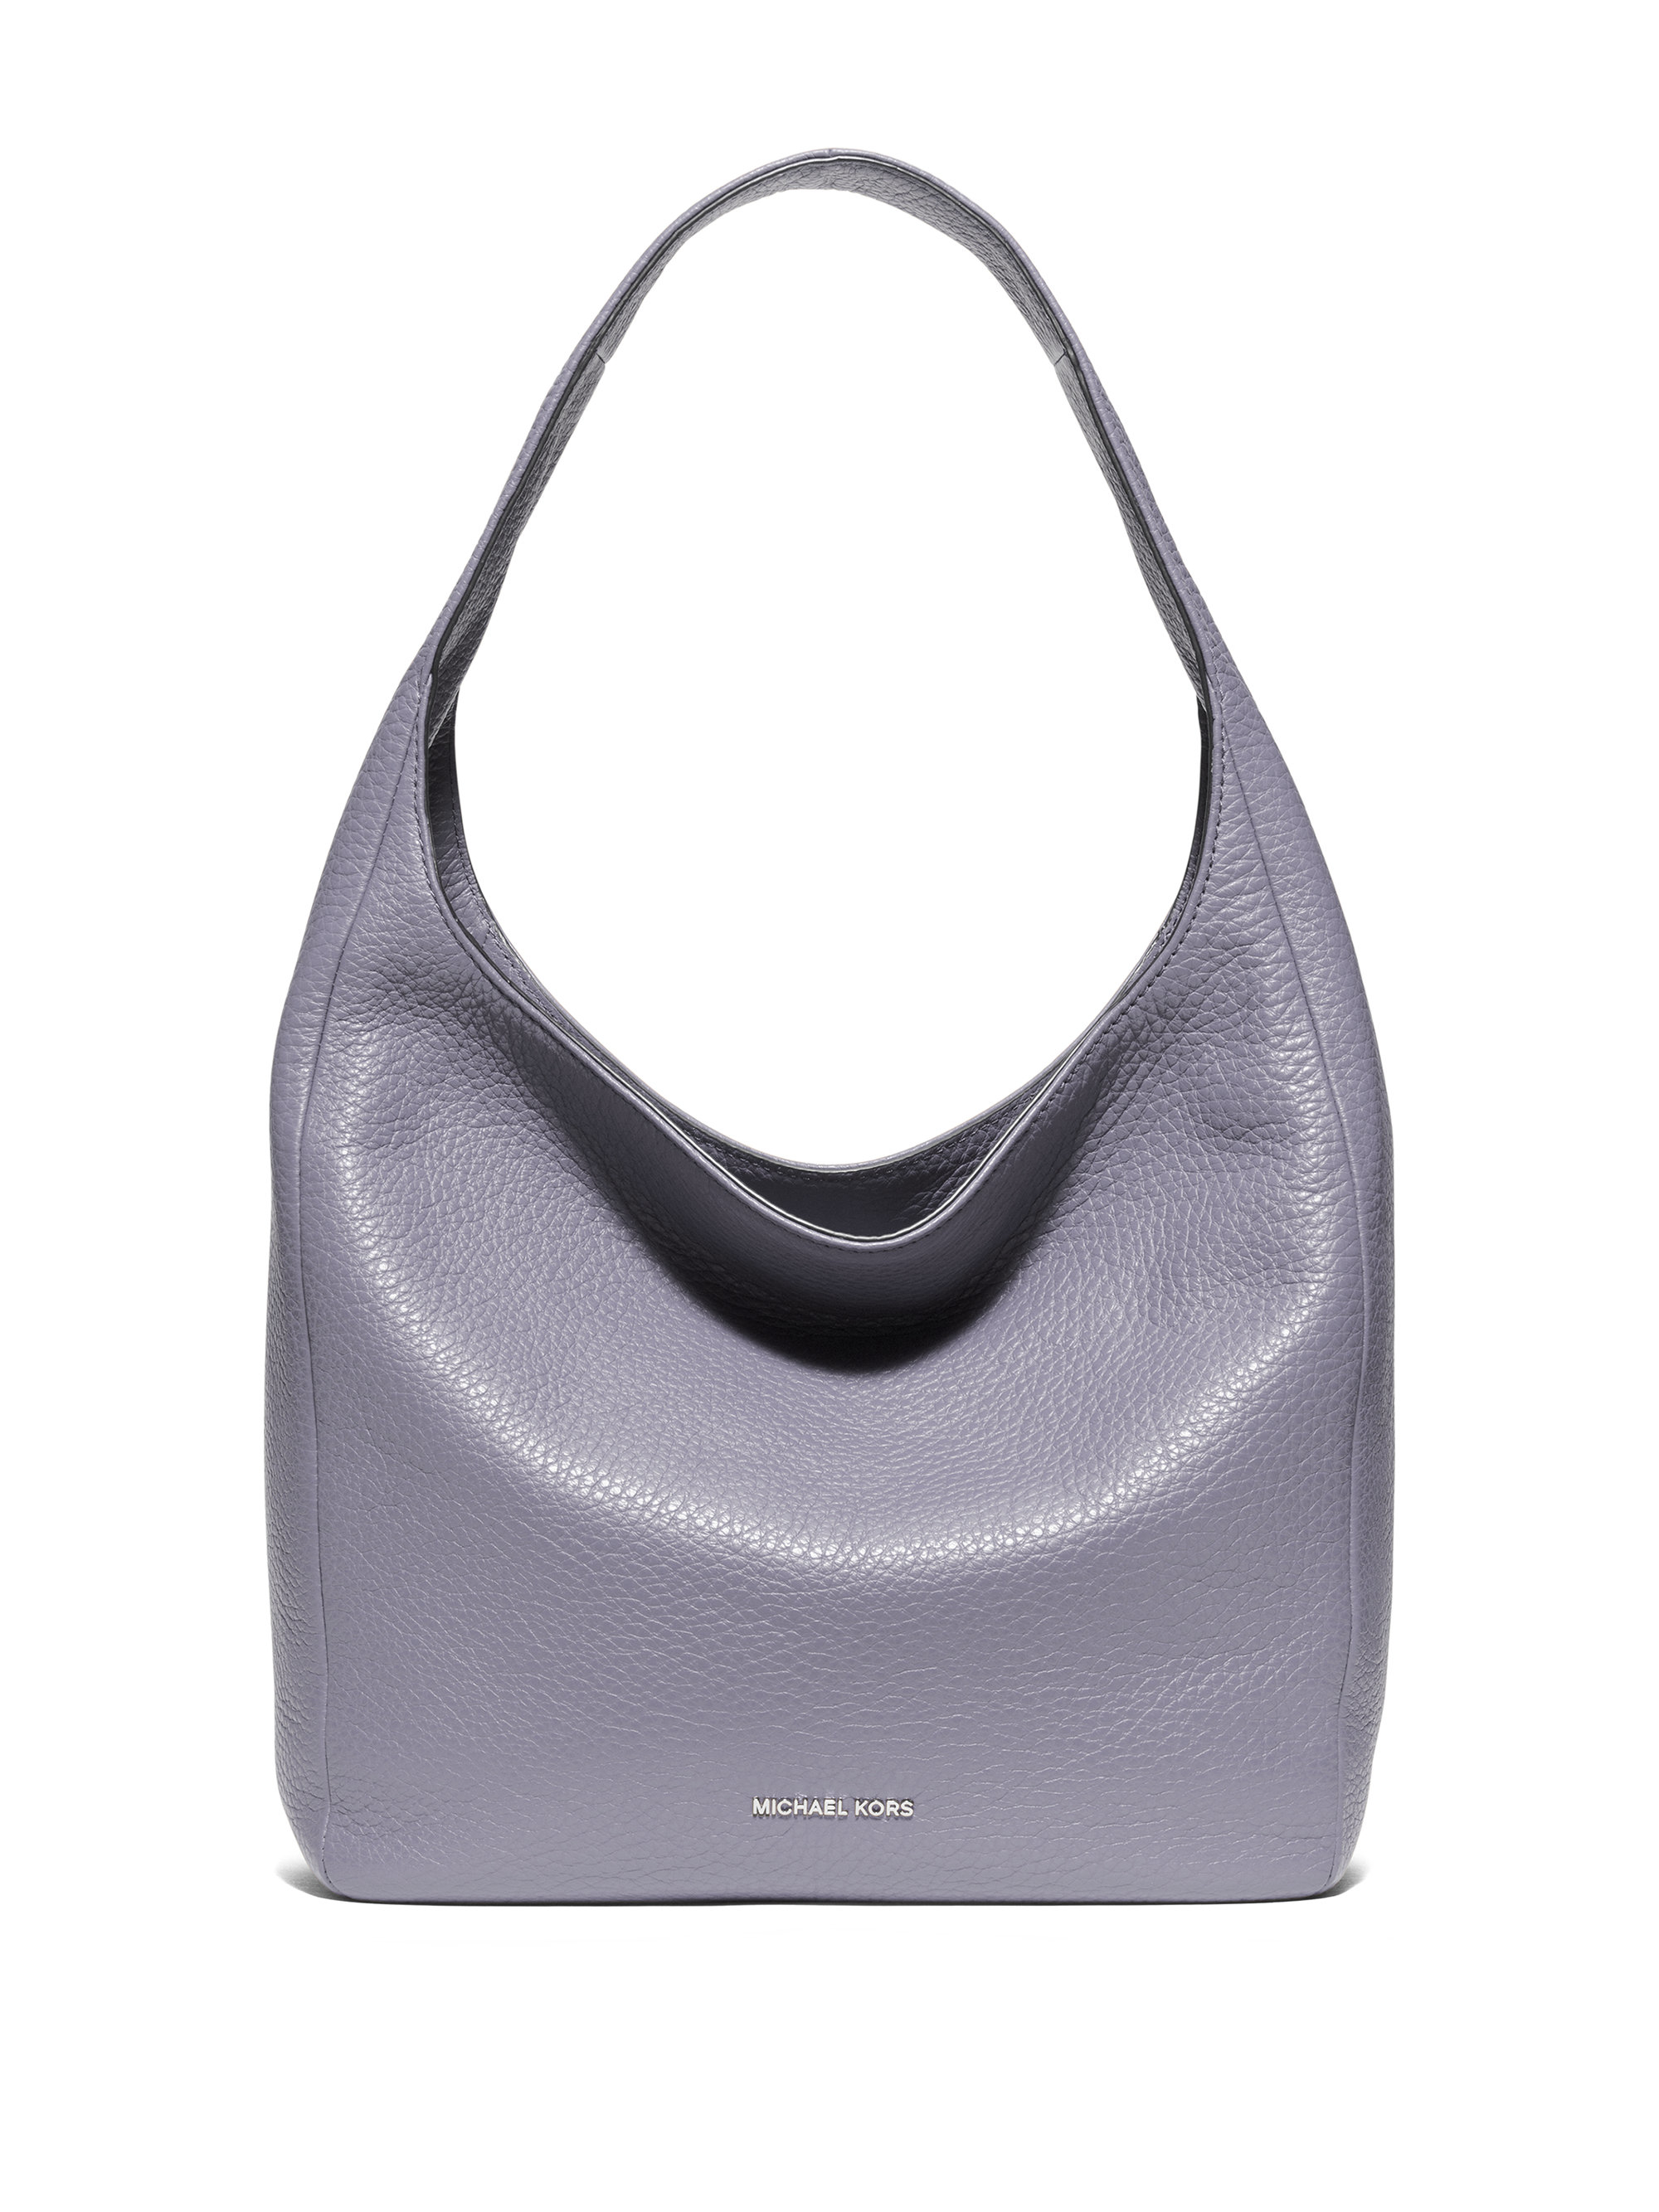 a3fd17d89eab MICHAEL Michael Kors Lena Large Leather Hobo Bag in Metallic - Lyst